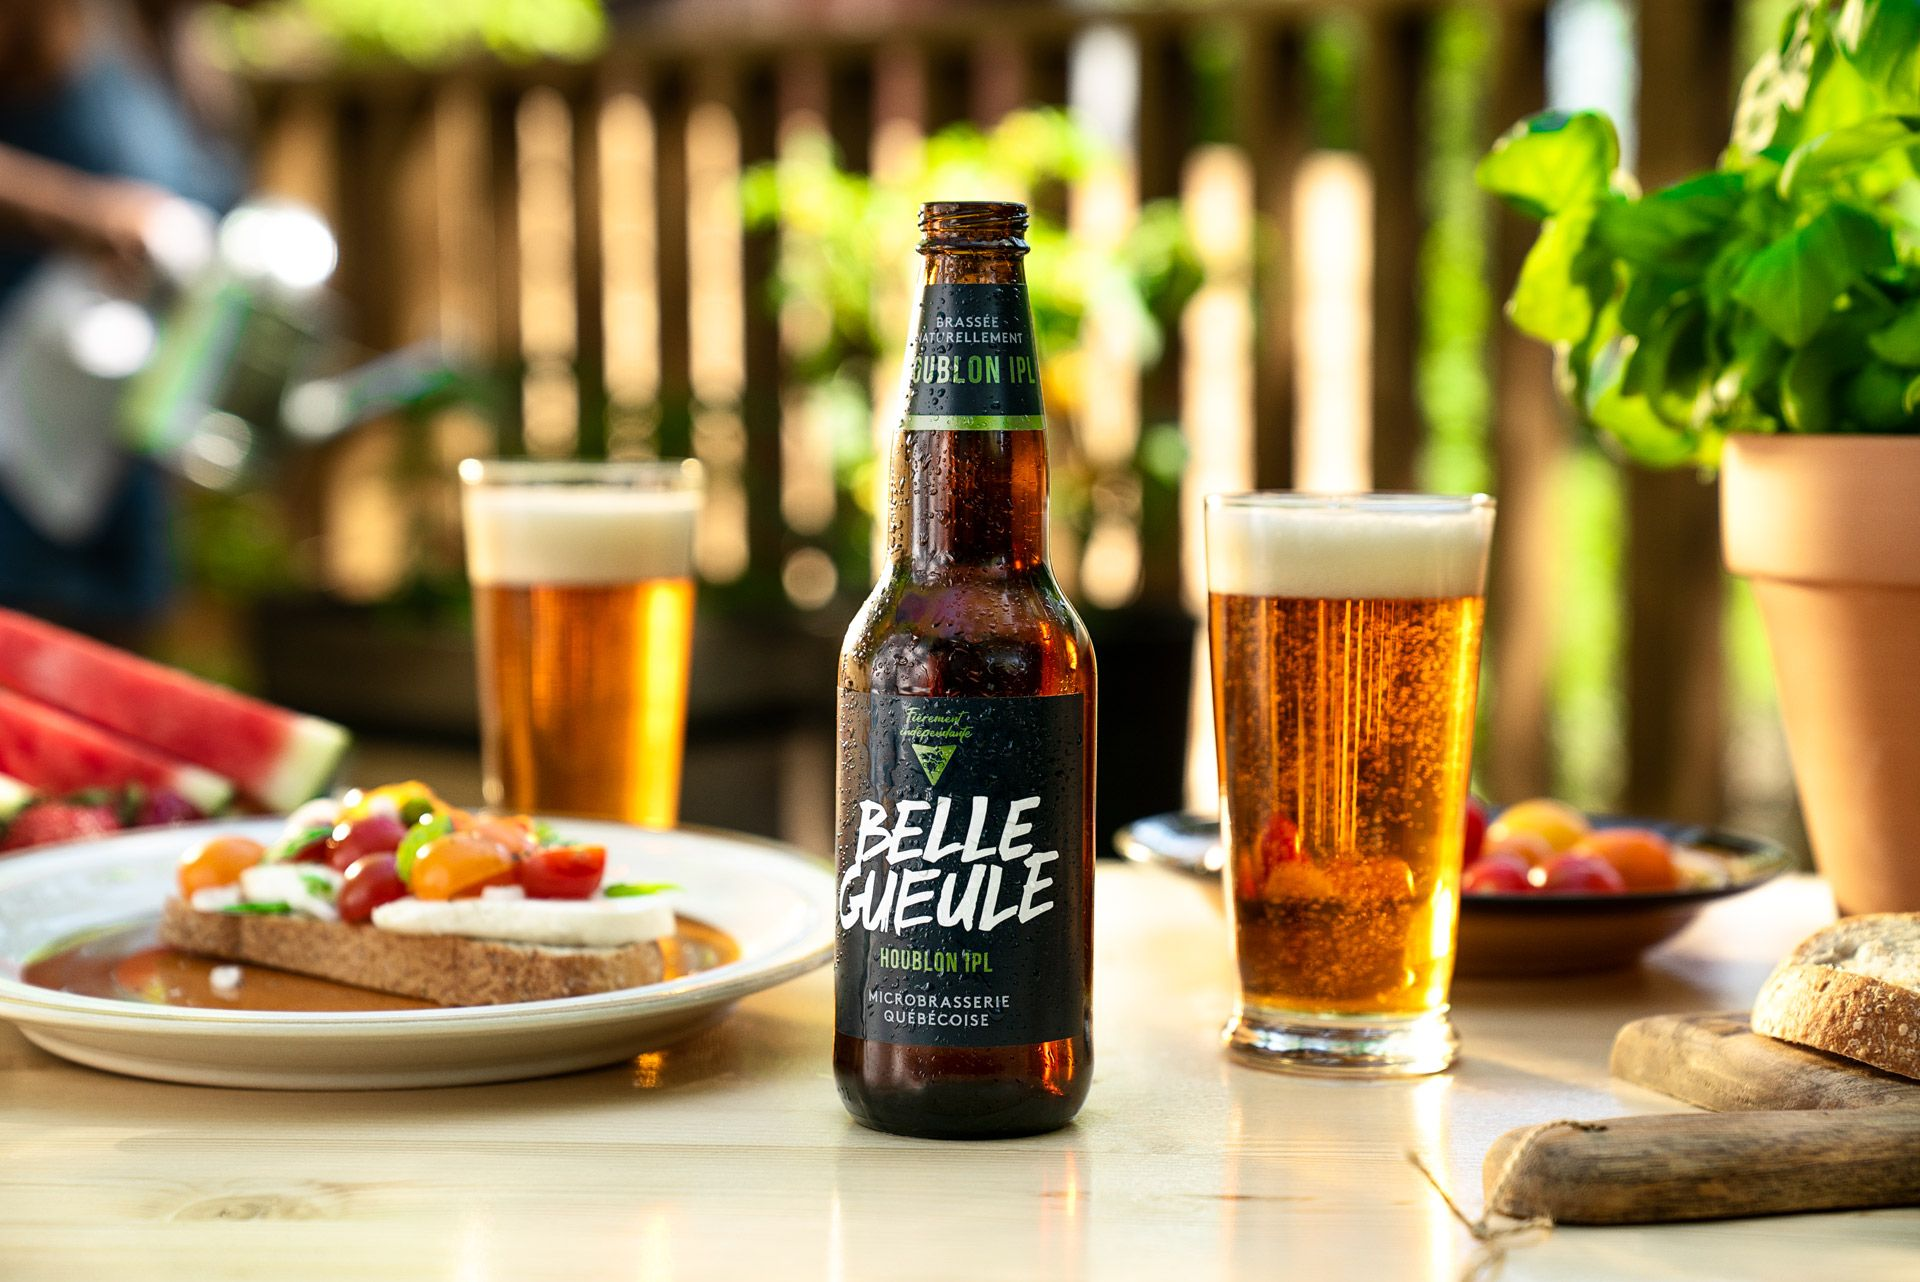 Belle Gueule's houblon IPL beer on table next to two glasses and tomato and feta salad photographed by Bruno Florin for Belle Gueule with Forsman & Bodenfors